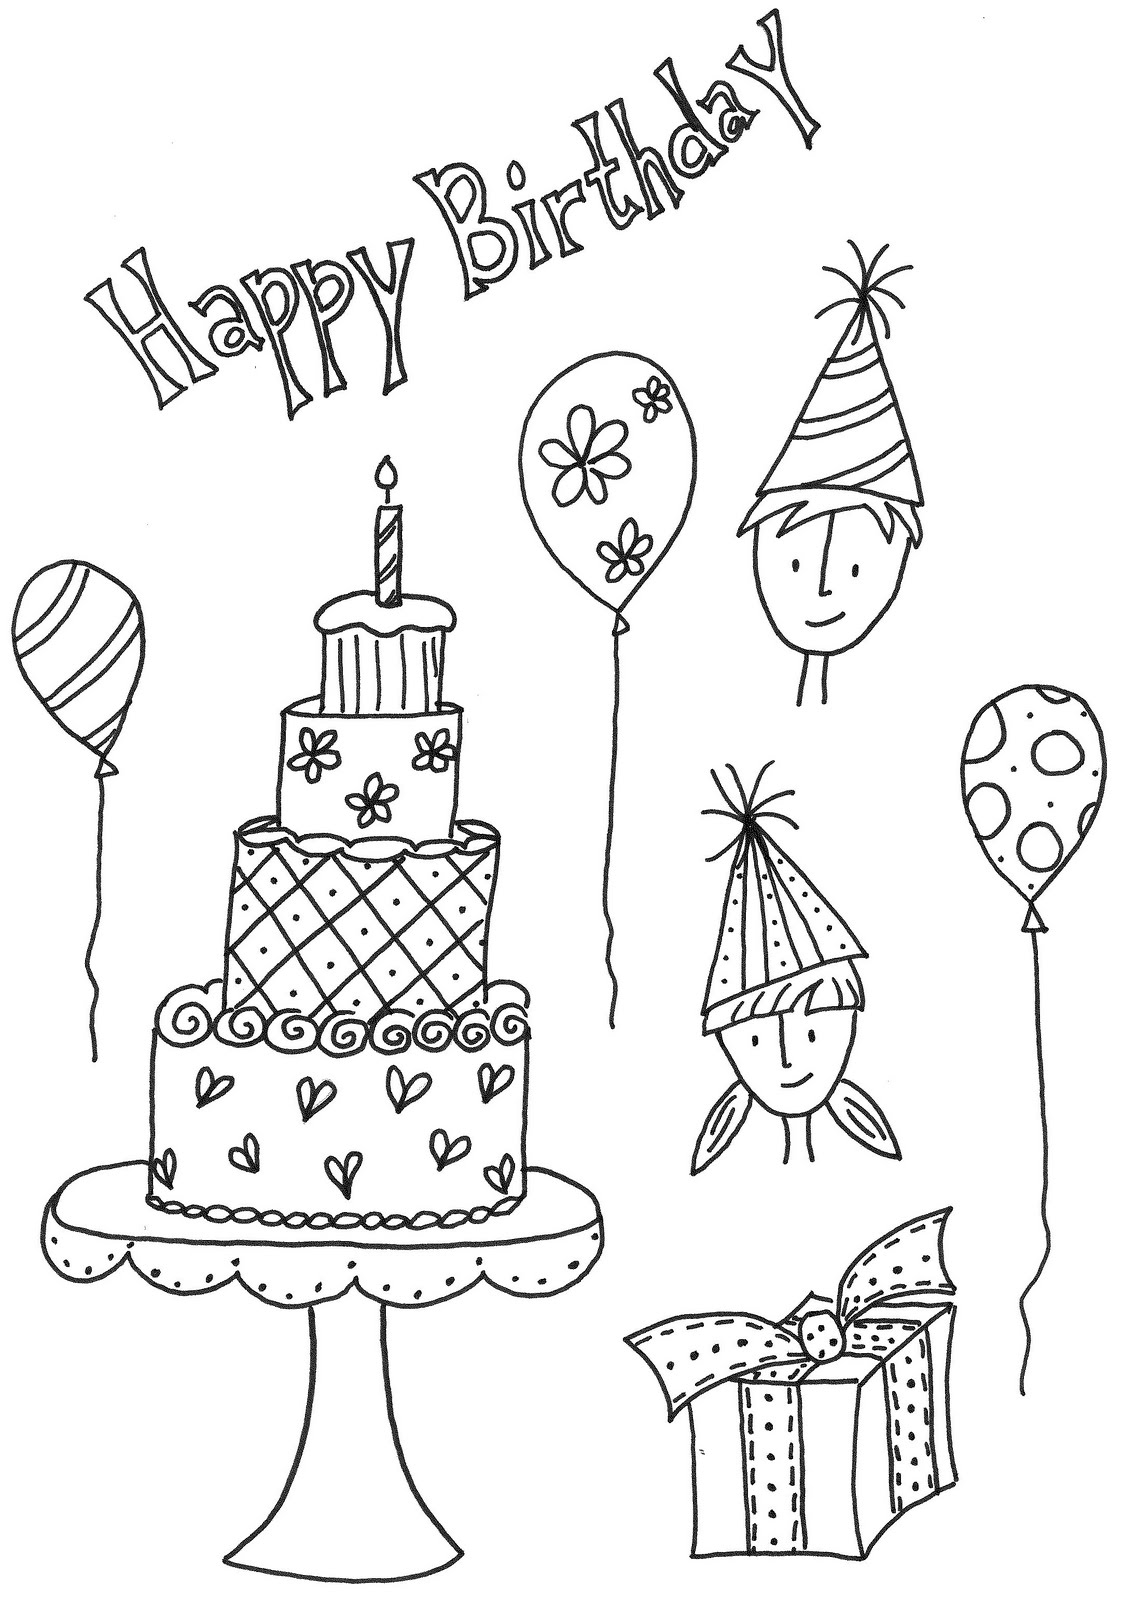 Pencil birthday cake drawing i want to do a birthdayhappy birthday pencil drawings